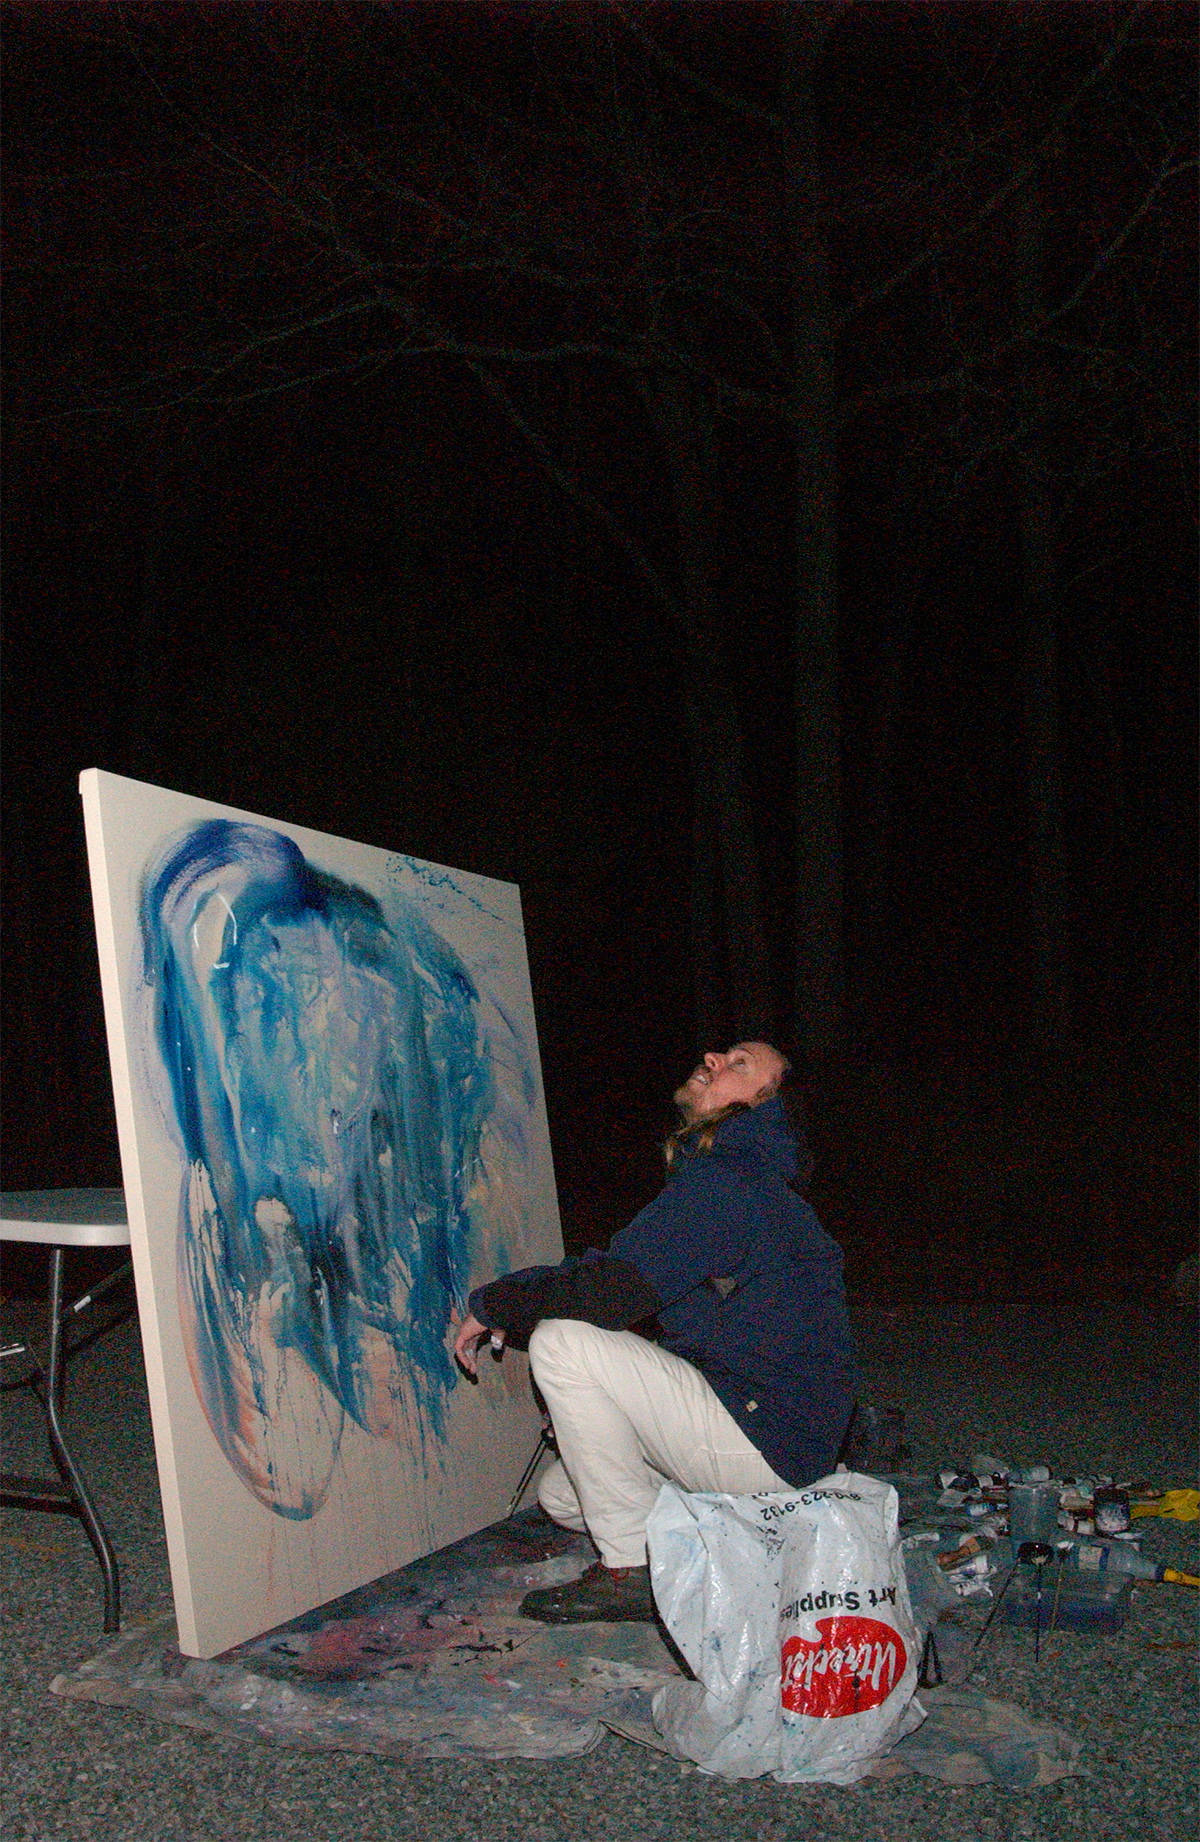 Artist and Art Dealer John Riepenhoff paints outdoors at night at the historic house and art studio originally owned by Elaine deKoonig. Artists John Chamberlain and Richmond Burton have lived and worked here. The structure's additions has multiple entrances and decks. The current owner an art curator makes this site available to other artists on a rotating basis which is located in the Northwest Woods of East Hampton, NY.